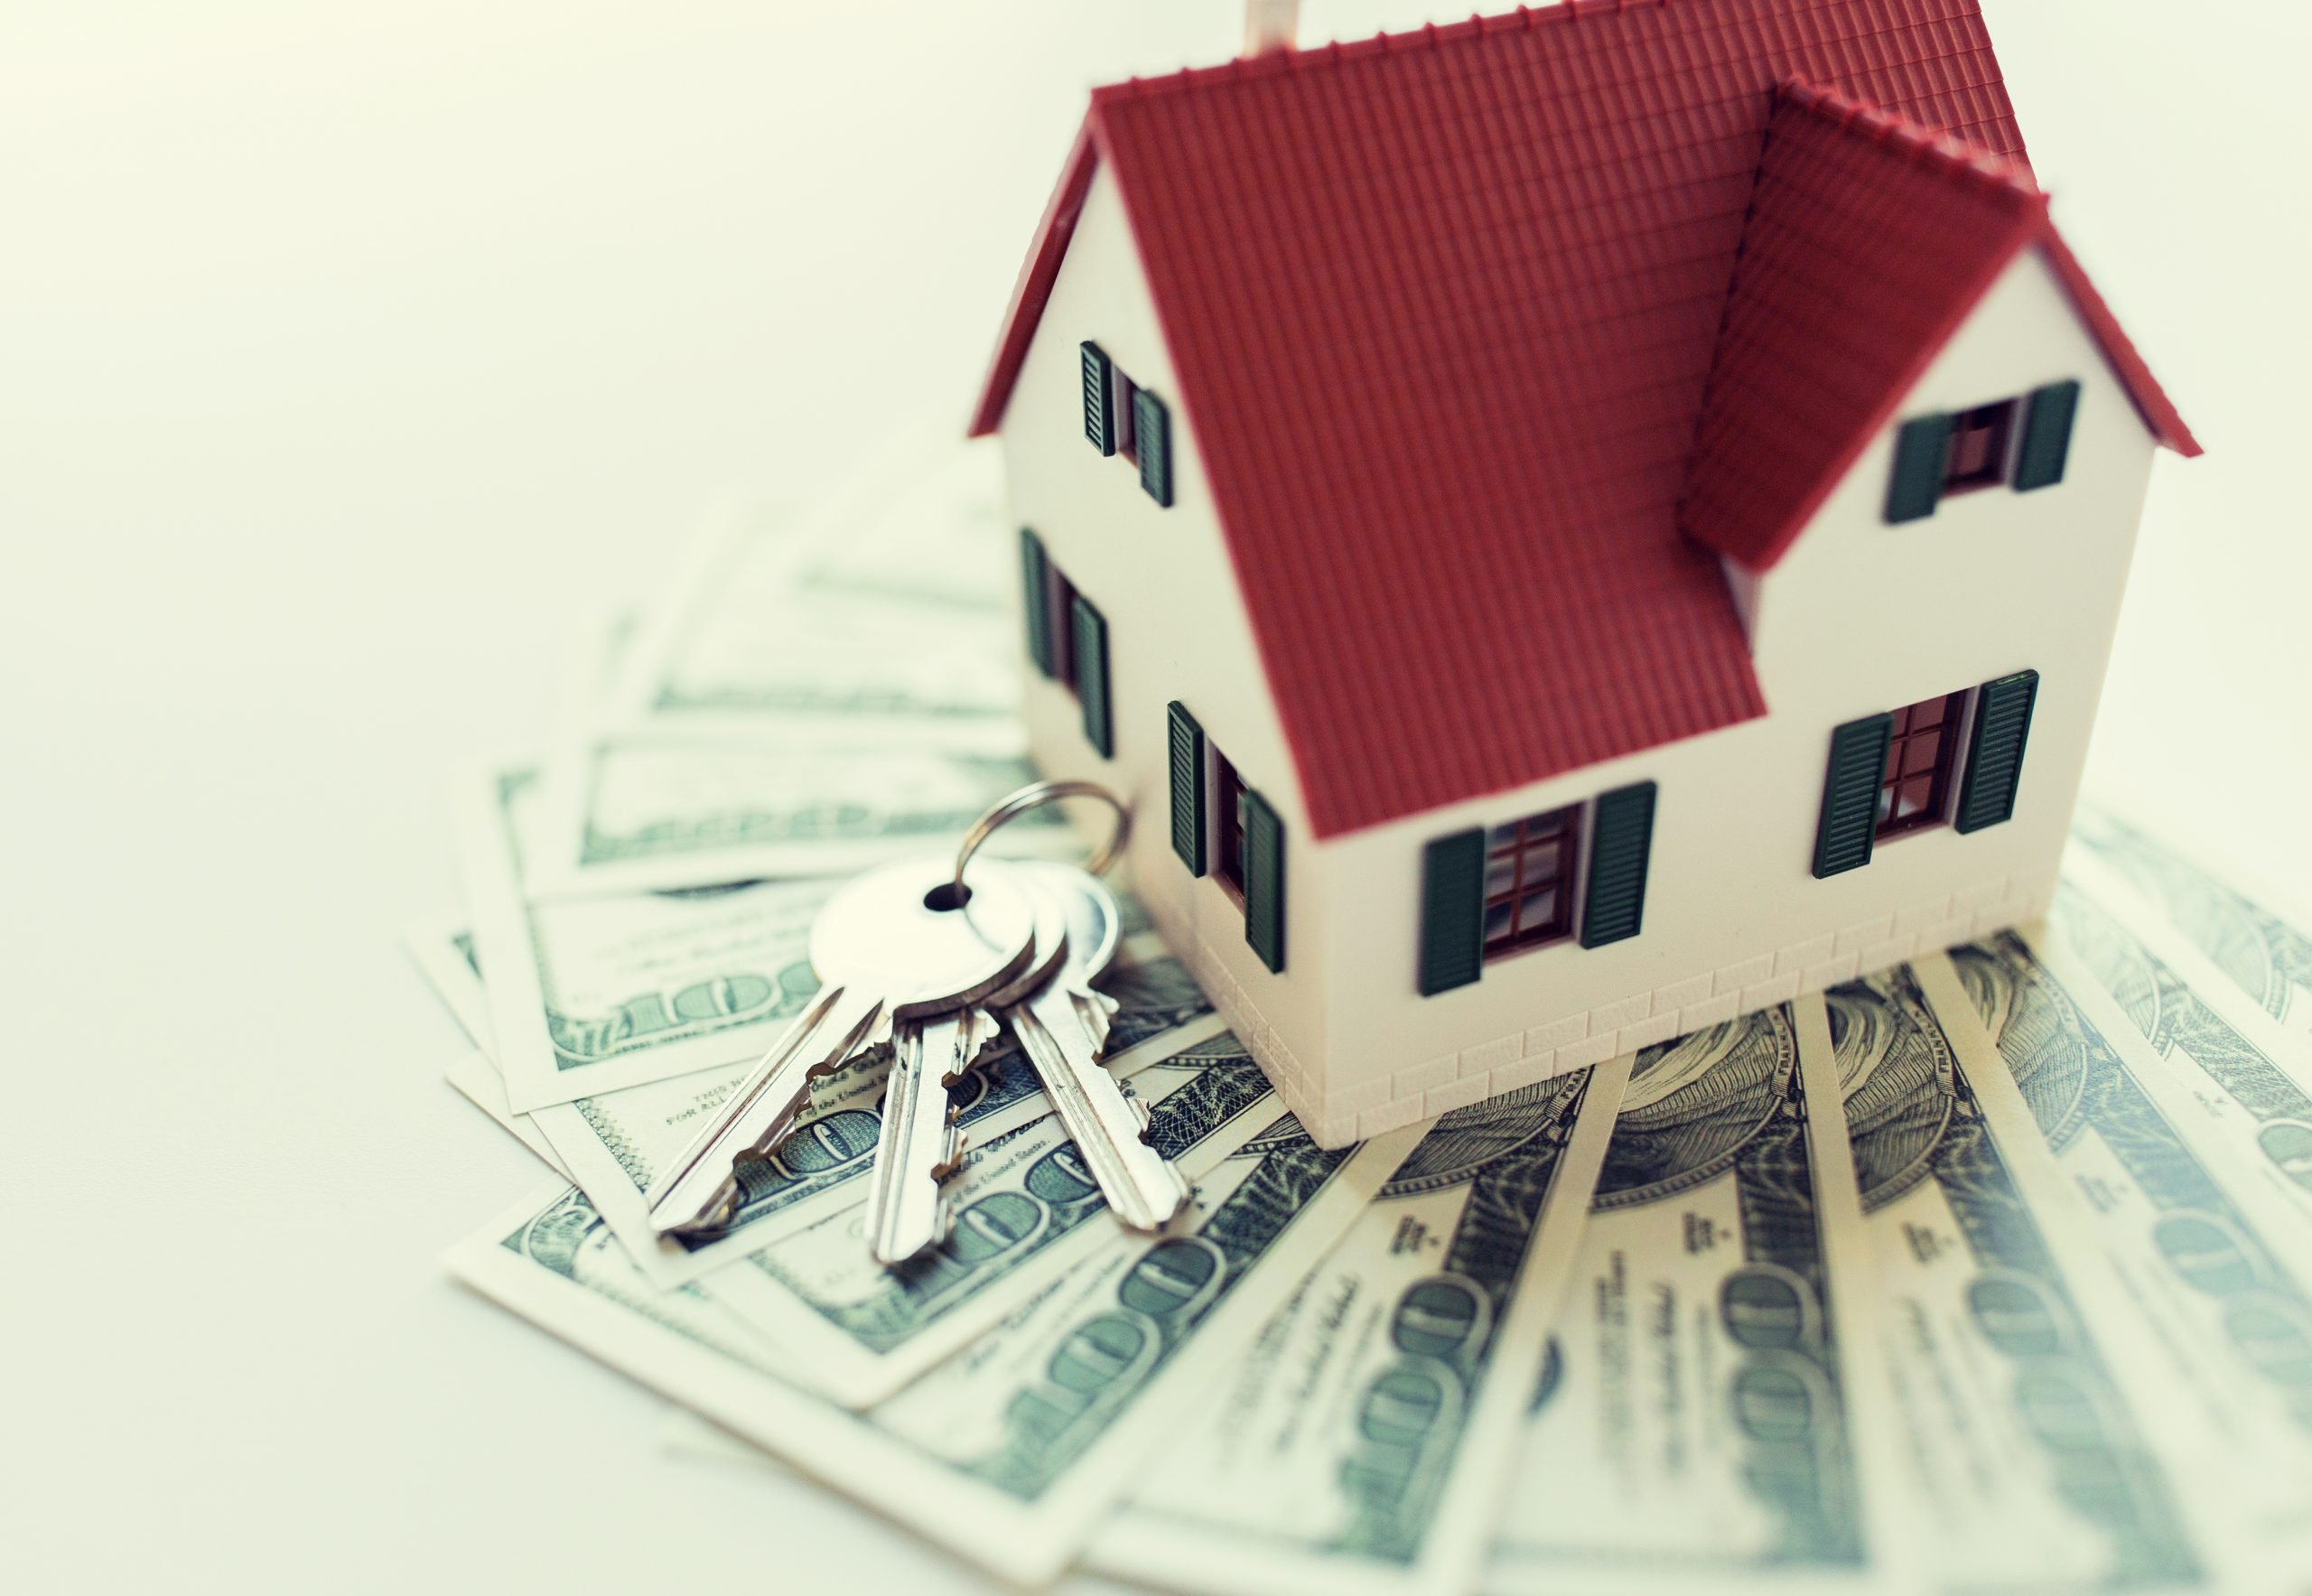 Avoid the hidden fees of real estate agents by selling your house for cash to Forged Homes in Detroit, MI.